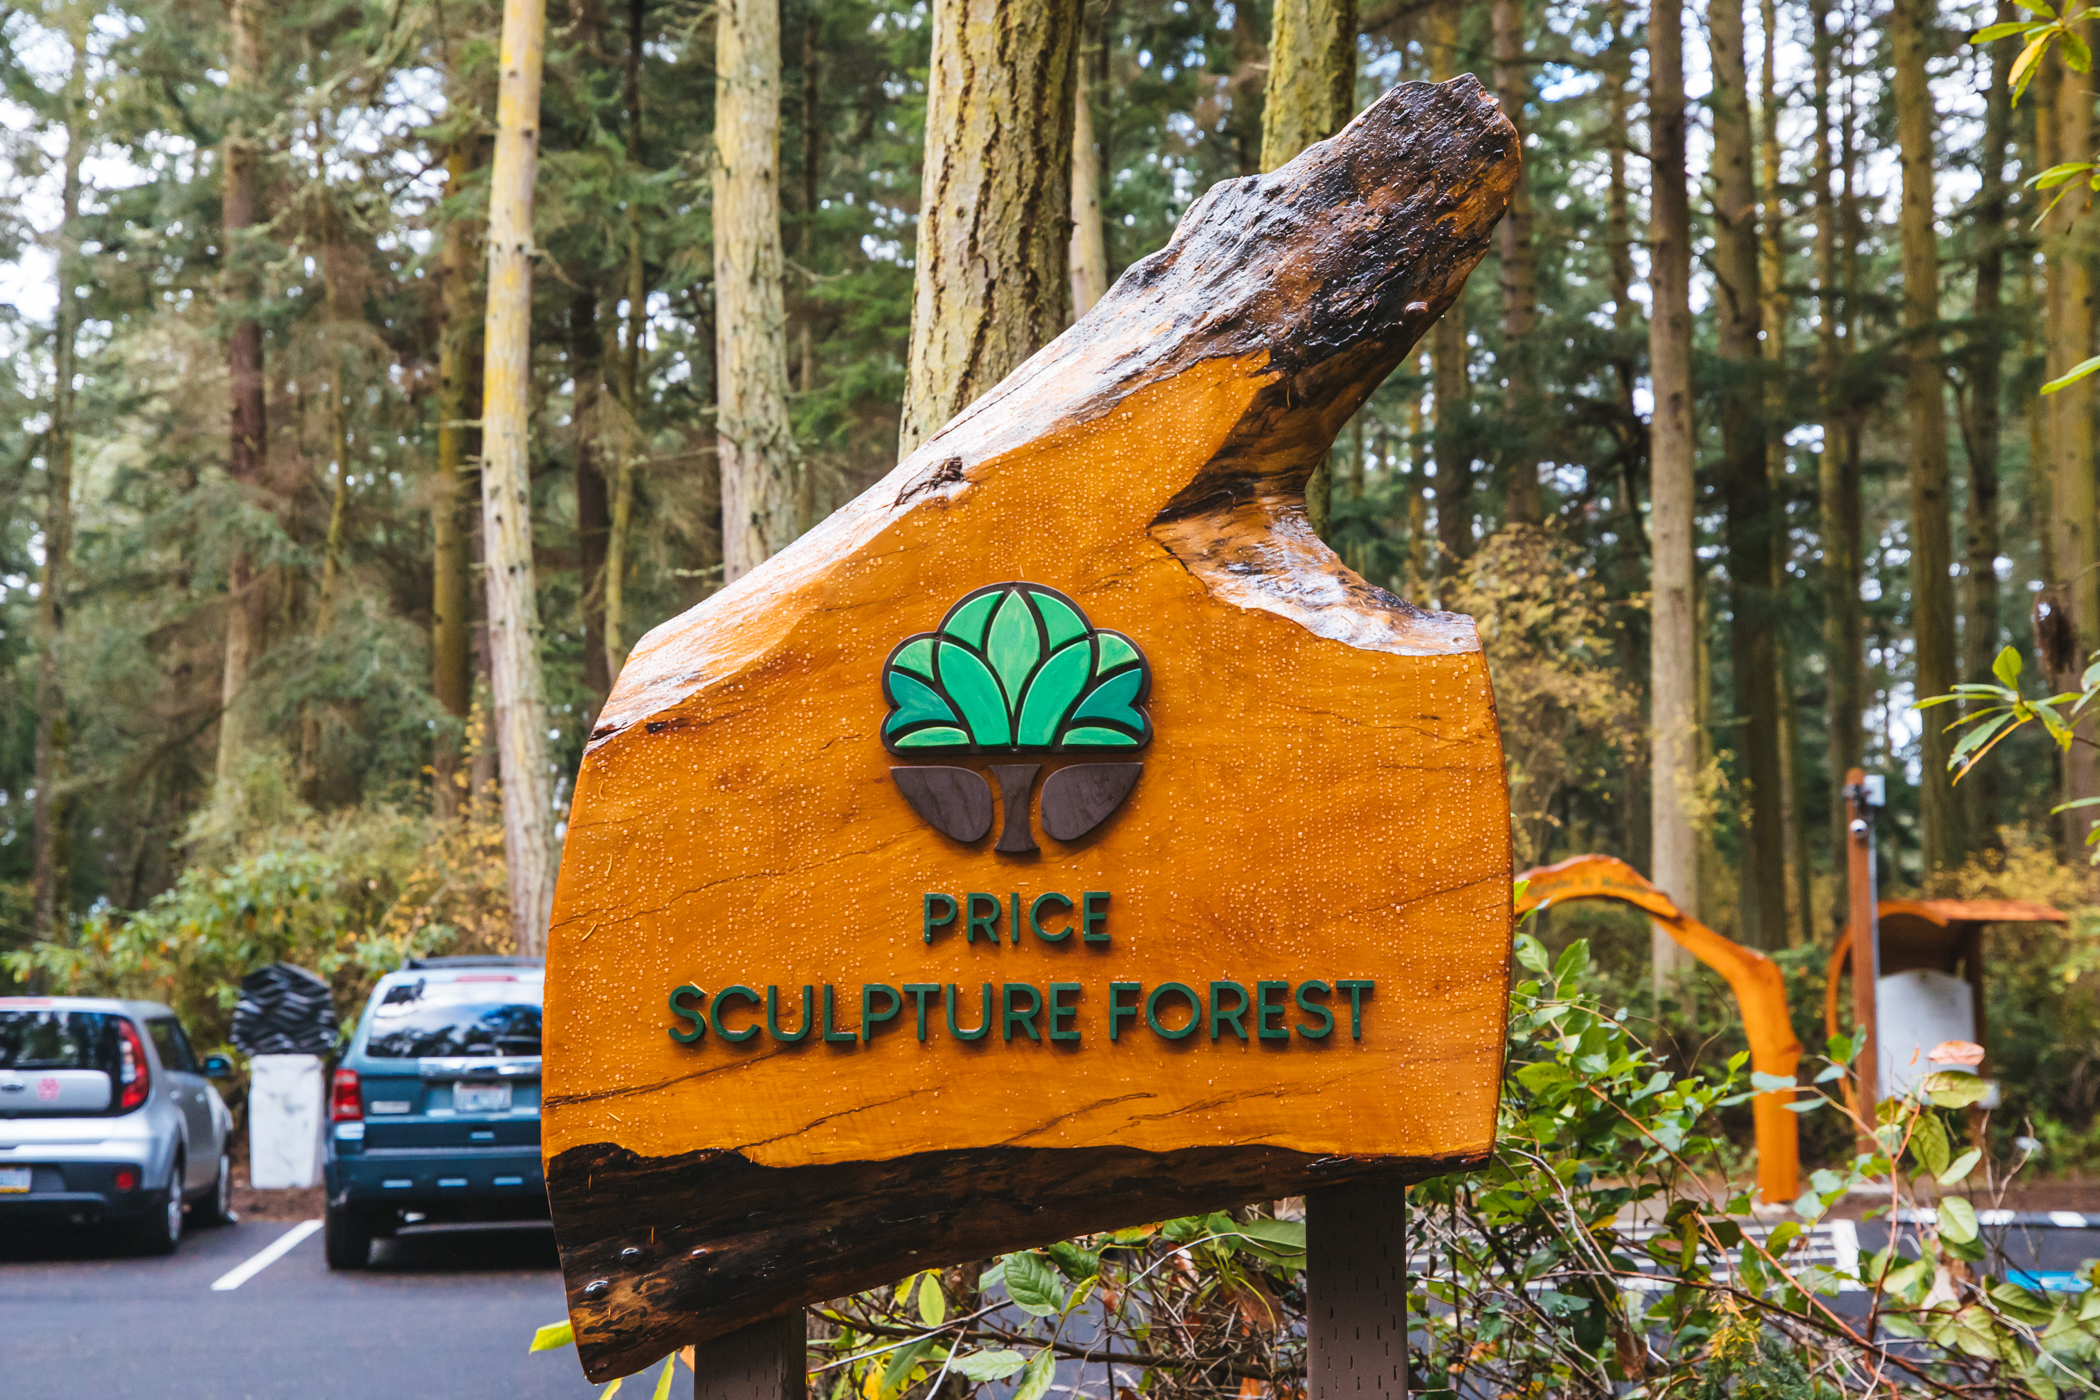 "Located 1.5 miles east of downtown Coupeville, the Price Sculpture Forest officially opened to the public in late October, and is a winding labyrinth of life-size sculptures from local artists. While some sculptures are easily spotted, others will make you work for it - hidden behind trees or handing from branches. The living trail system has two walking trail loops, each with their own theme: Nature Nurtured sculptures relate to earth's elements, while Whimsy Way sculptures are more playful. The connected loops were designed intentionally to provide significant personal space, making it an ideal activity during the era of social distancing. The park is open daily from dawn to dusk, with free public tours available{&nbsp;}<a  href=""https://sculptureforest.org/"" target=""_blank"" title=""https://sculptureforest.org/"">by request</a>. (Image: Sunita Martini / Seattle Refined){&nbsp;}"